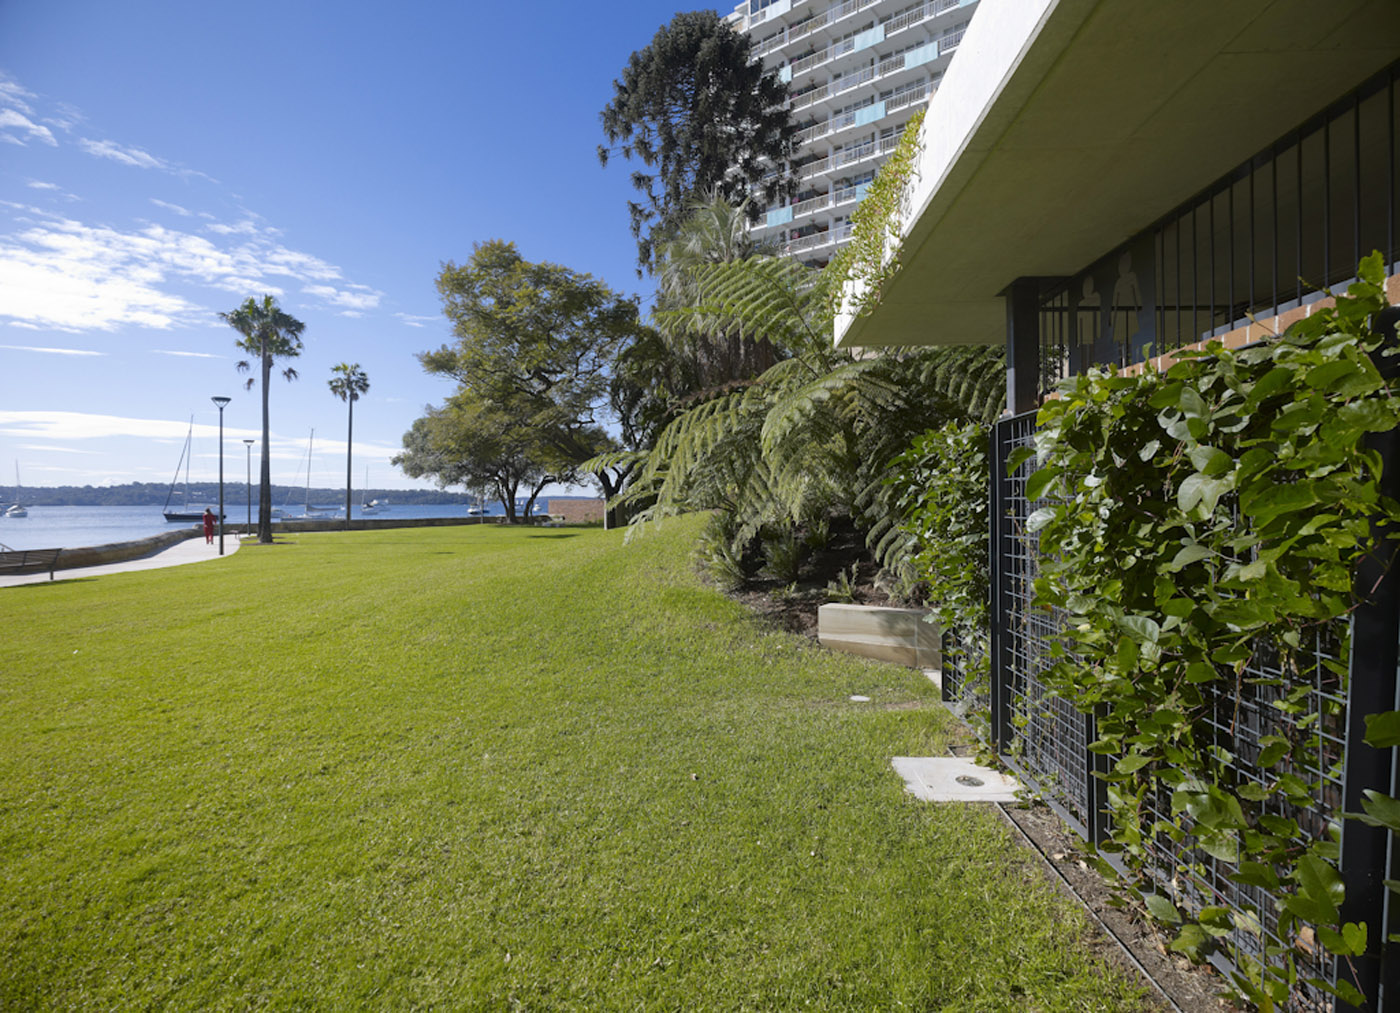 Beare Park Amenities by award winning Sydney public architecture firm Sam Crawford Architects. The facility looking out to the waterfront